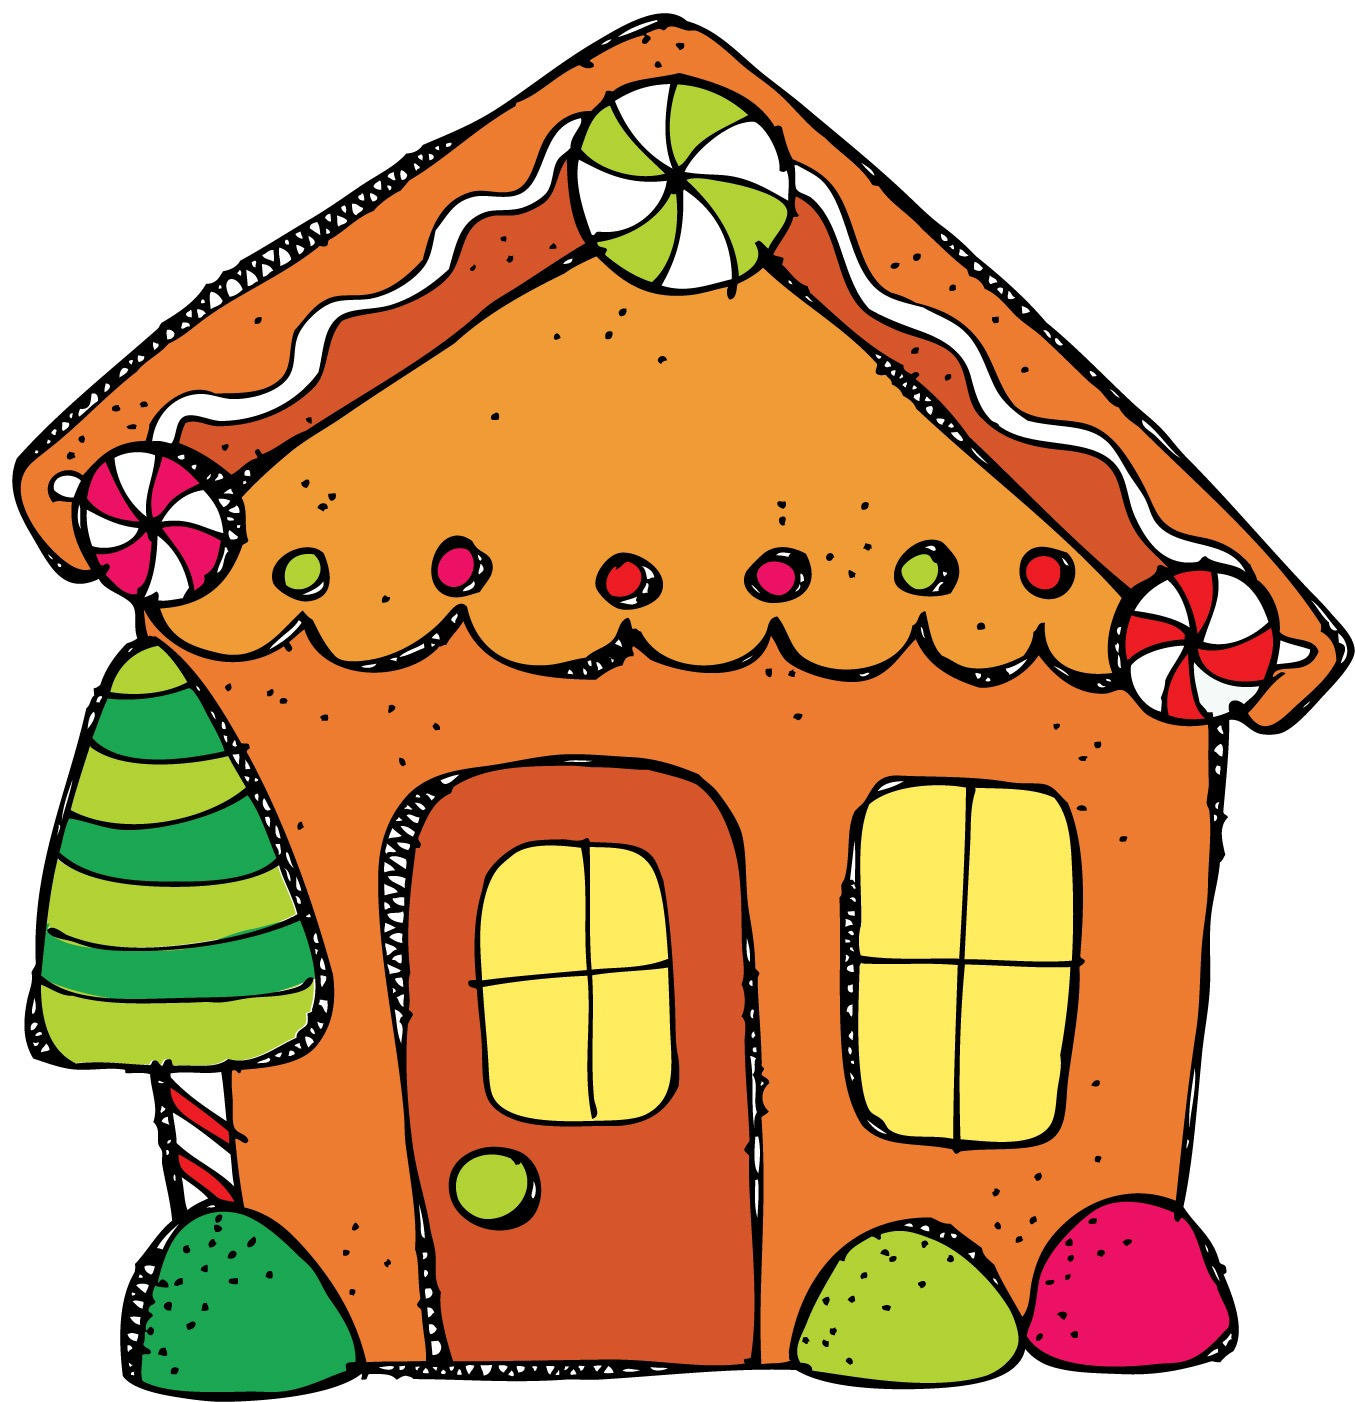 Mansion clipart home Clipart Cute Images clipart Clipart